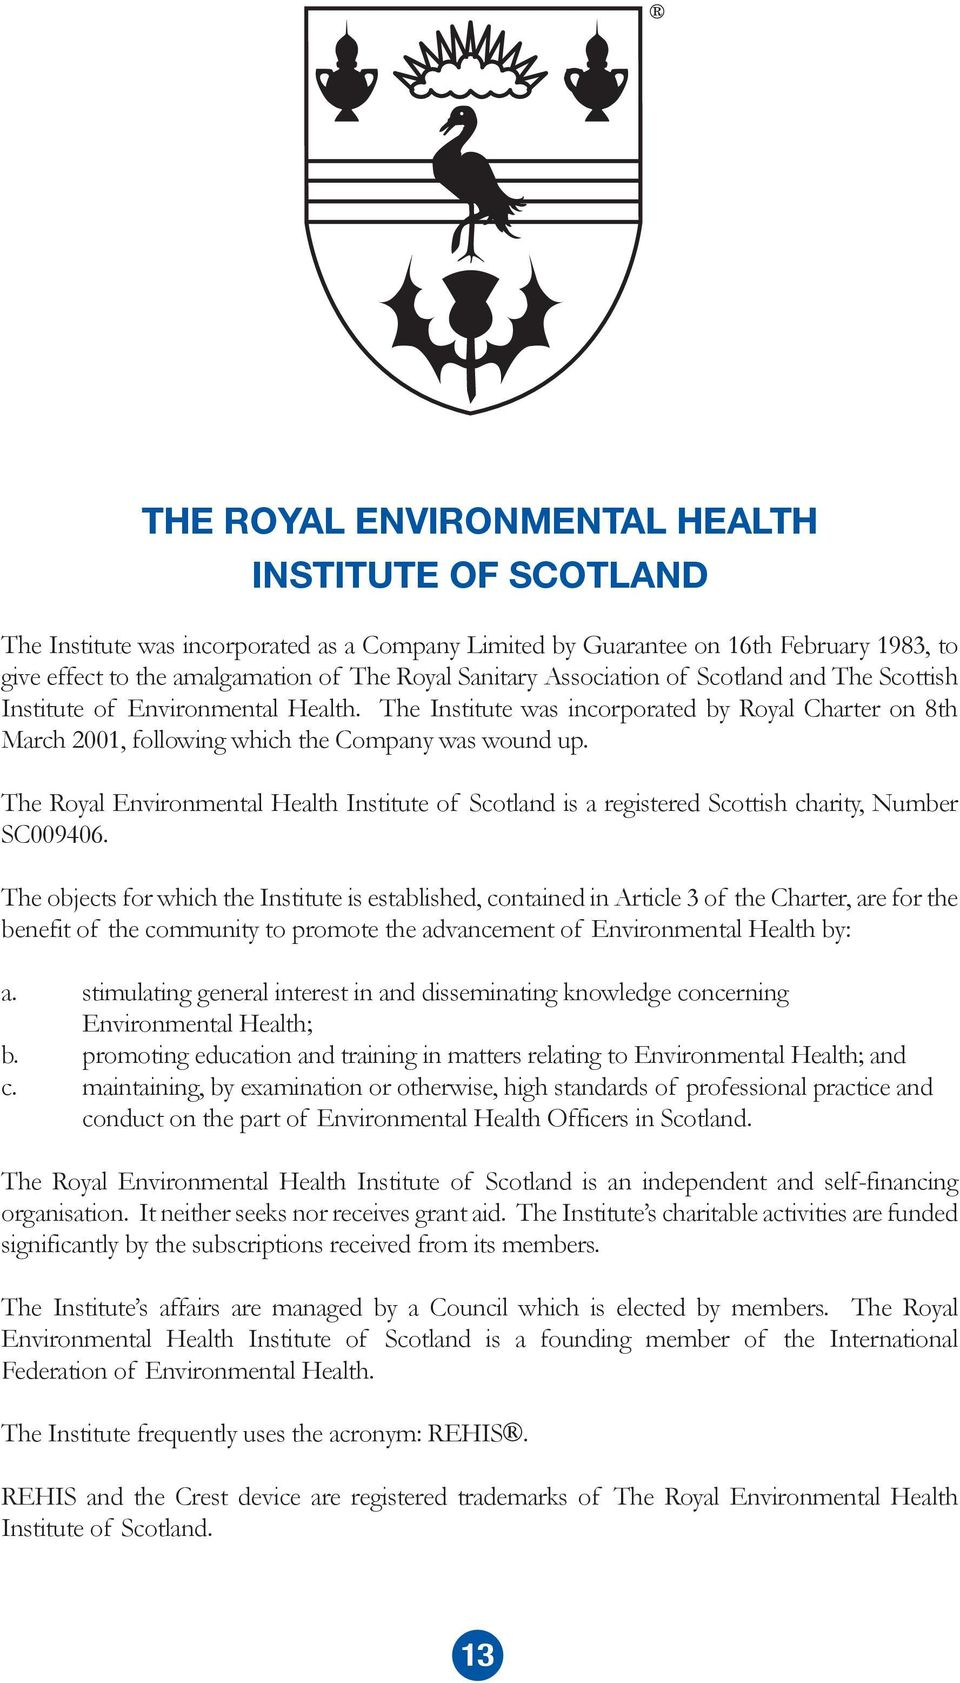 The Royal Environmental Health Institute of Scotland is a registered Scottish charity, Number SC009406.